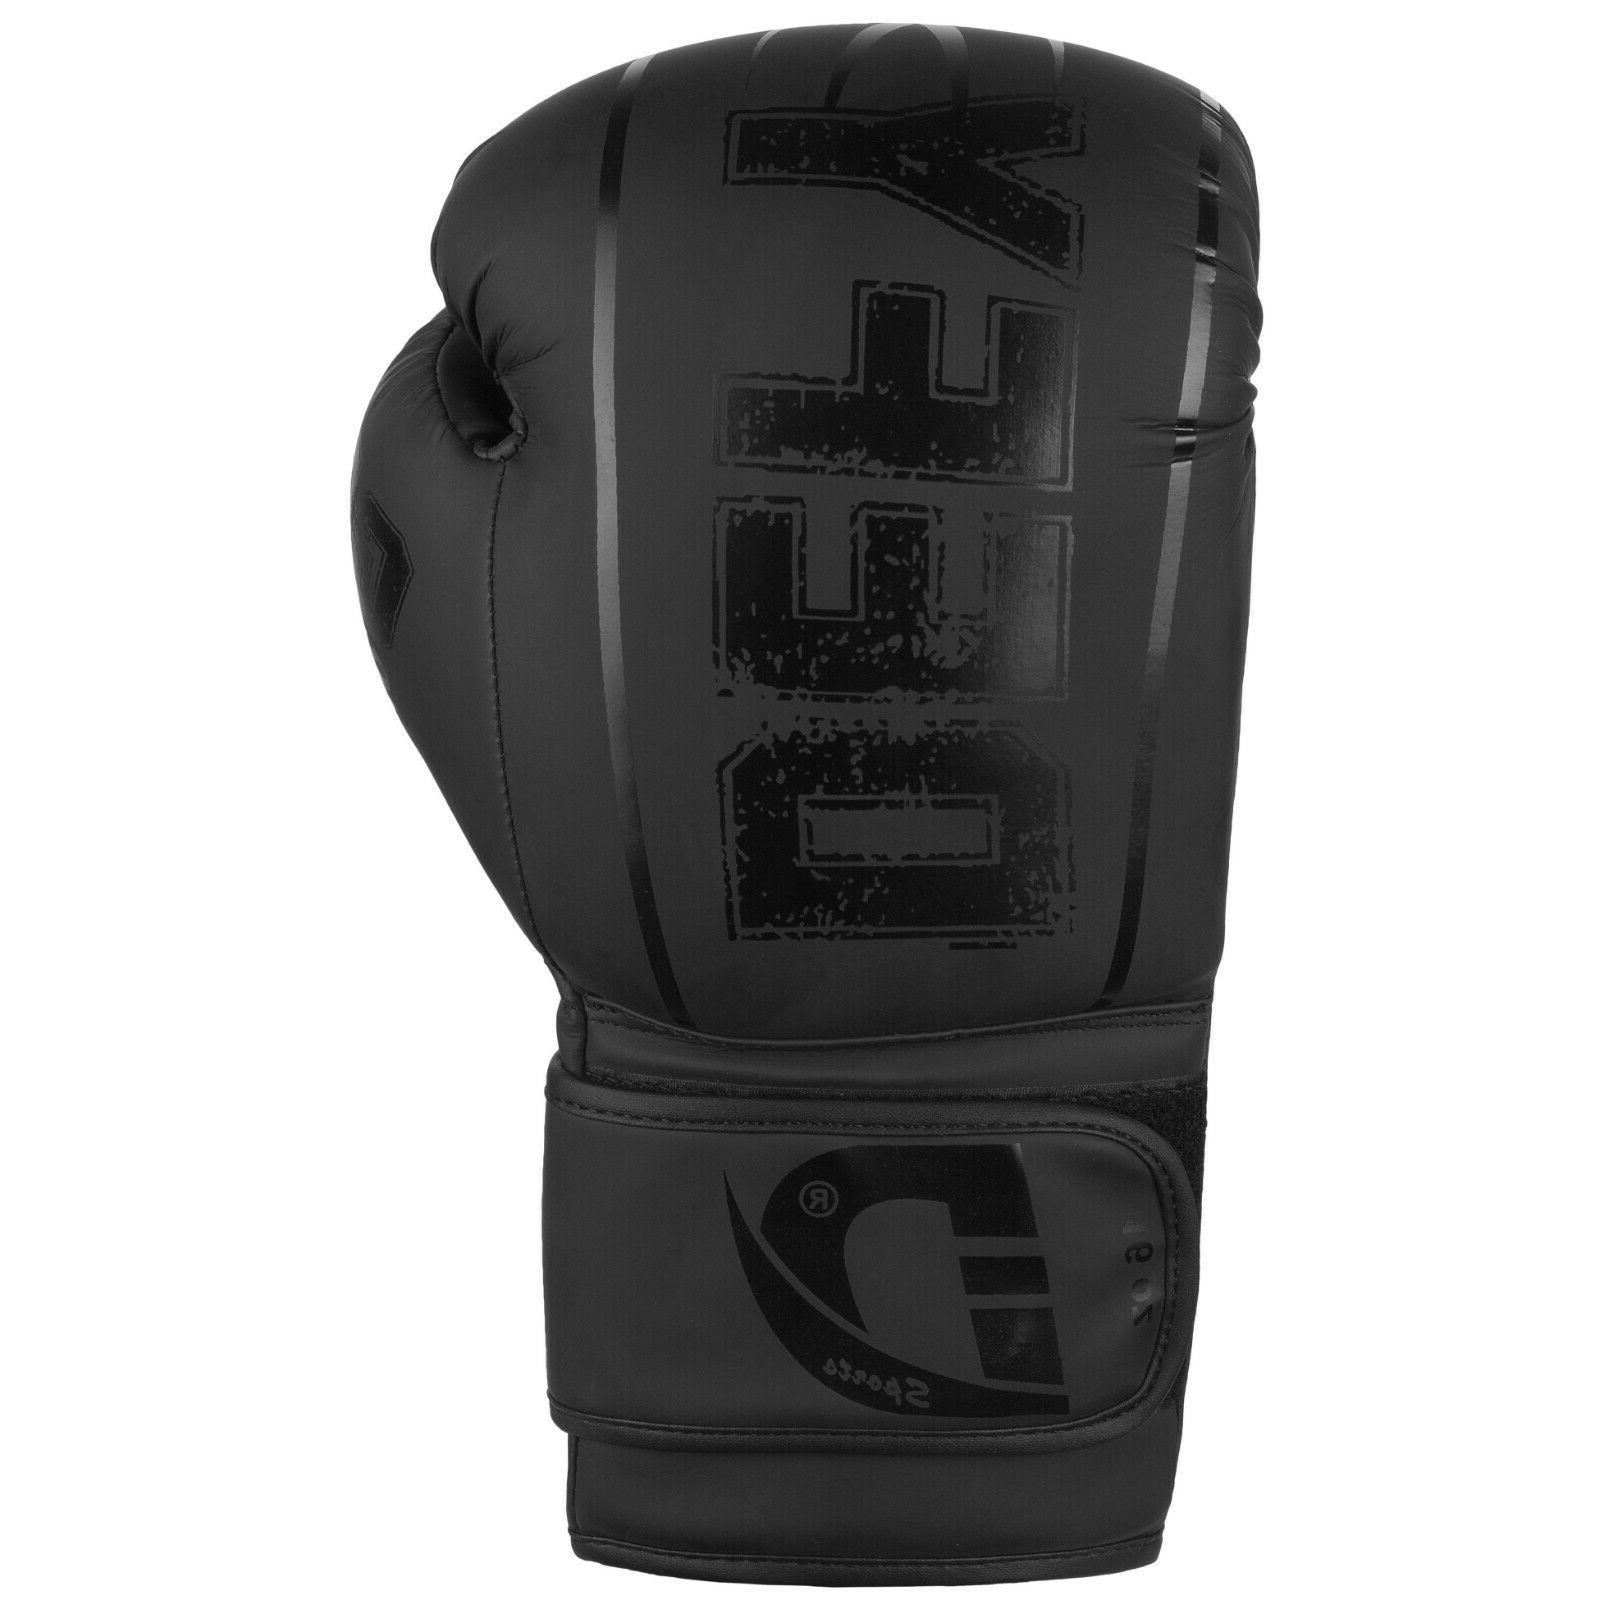 DEFY® Synthetic Leather Boxing Glove Thai Training Punching Bag Gloves